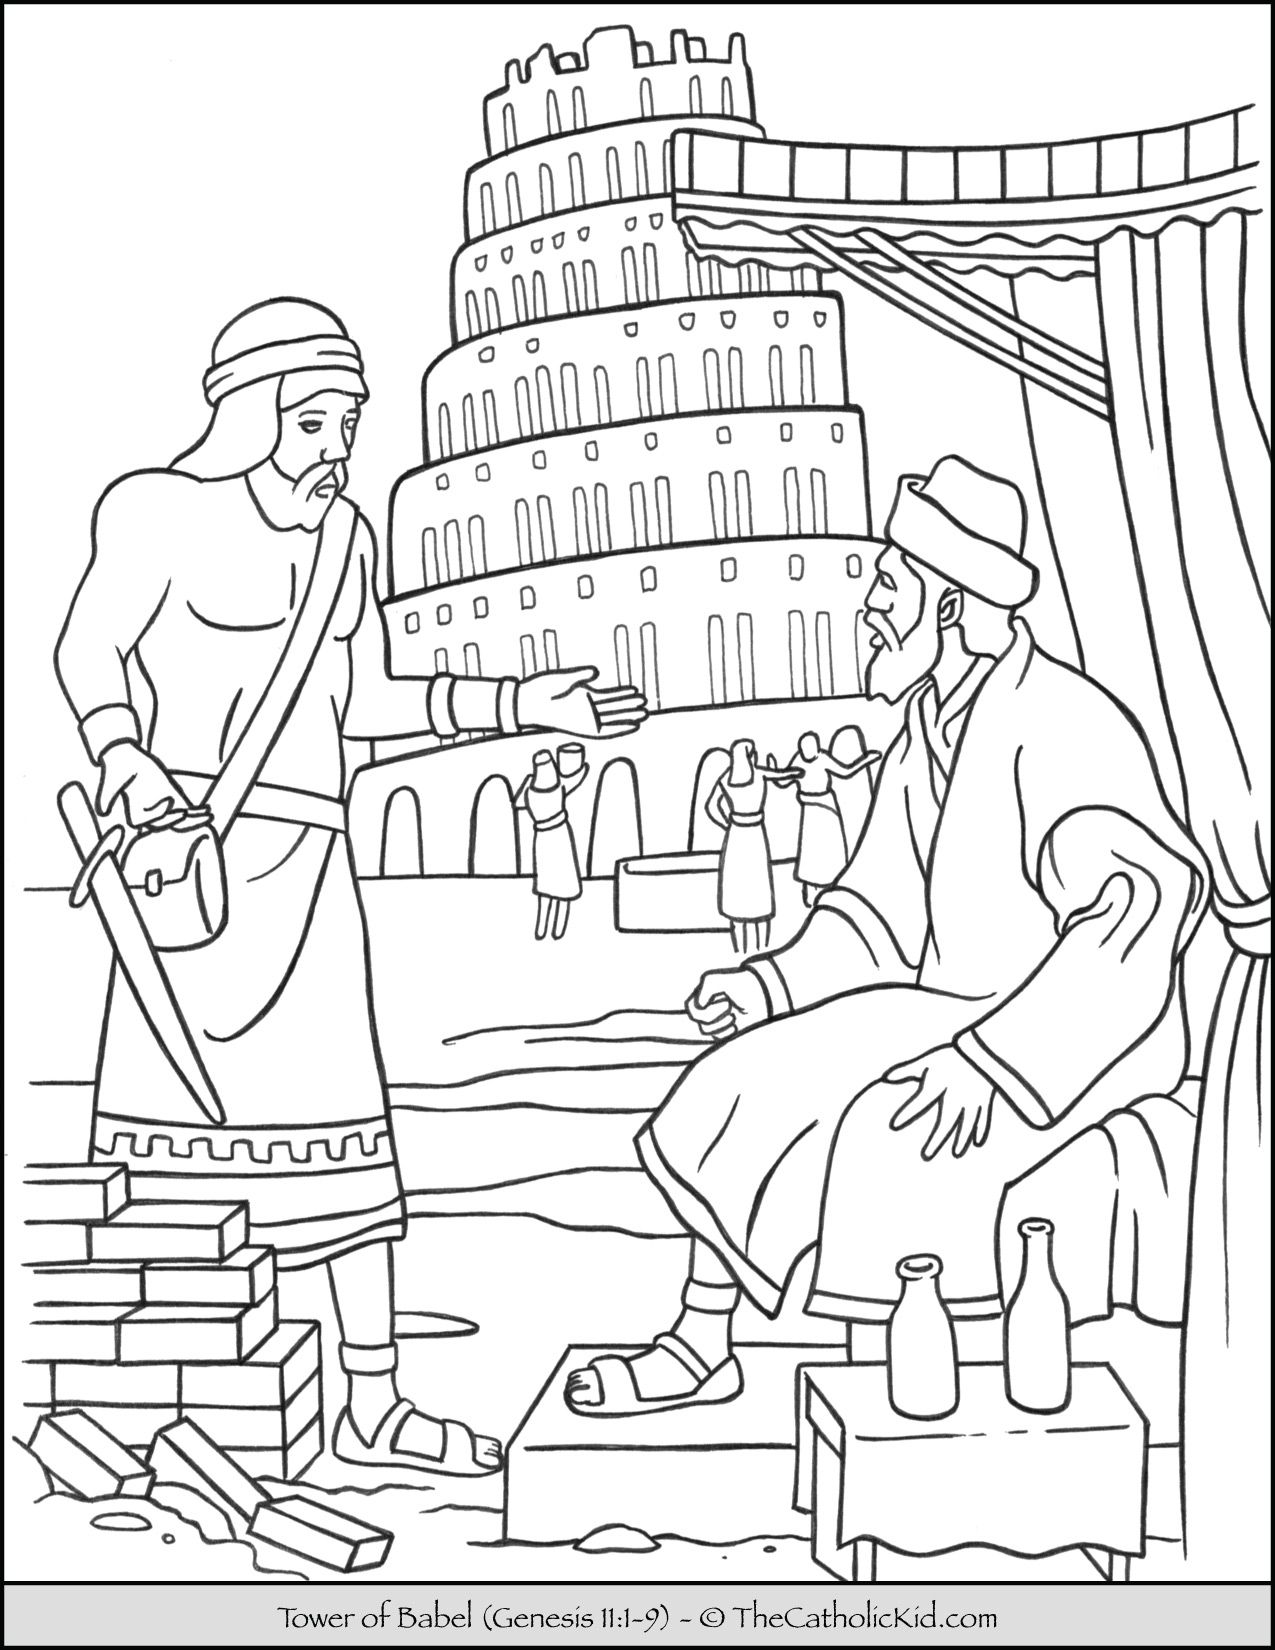 tower of babel coloring pages for kids tower of babel coloring pages free coloring home tower kids coloring for babel of pages